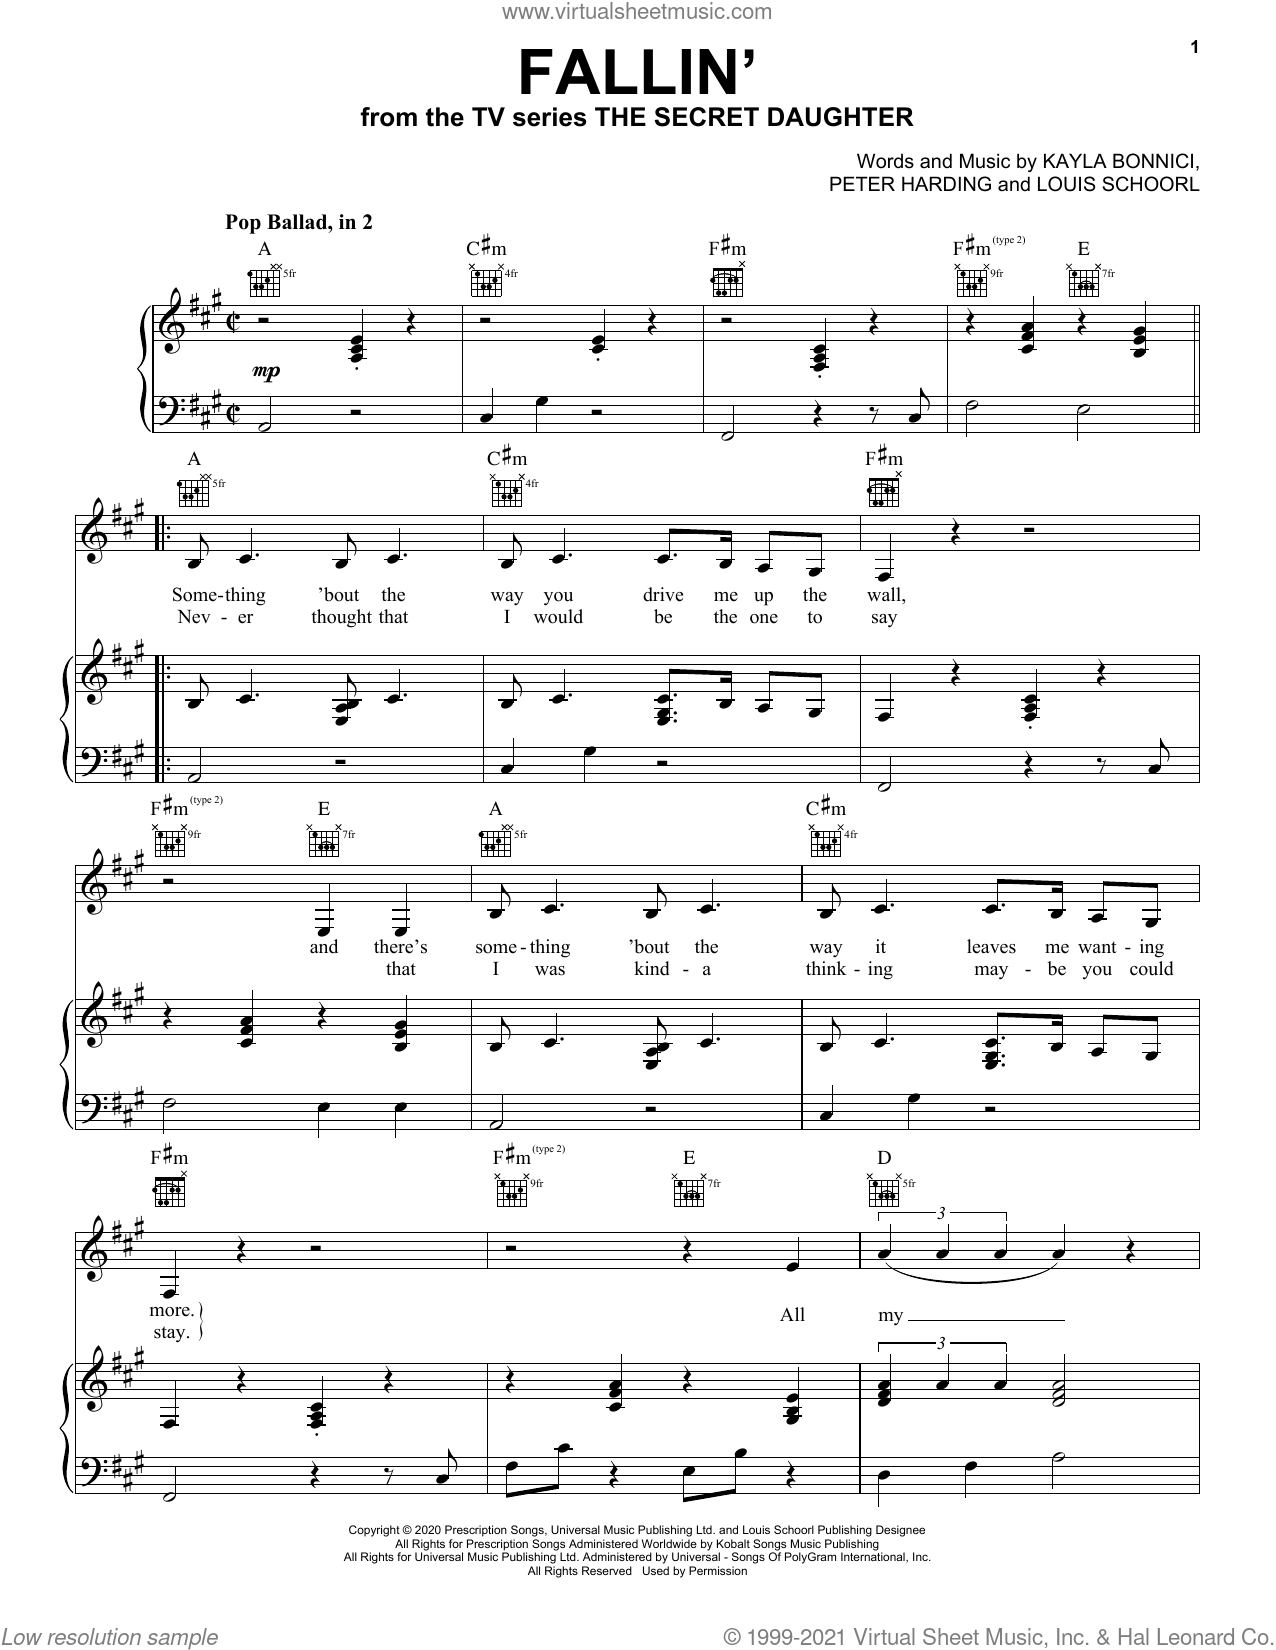 Fallin' (from the TV series The Secret Daughter) sheet music for voice, piano or guitar by Jessica Mauboy, Kayla Bonnici, Louis Schoorl and Peter Harding, intermediate skill level